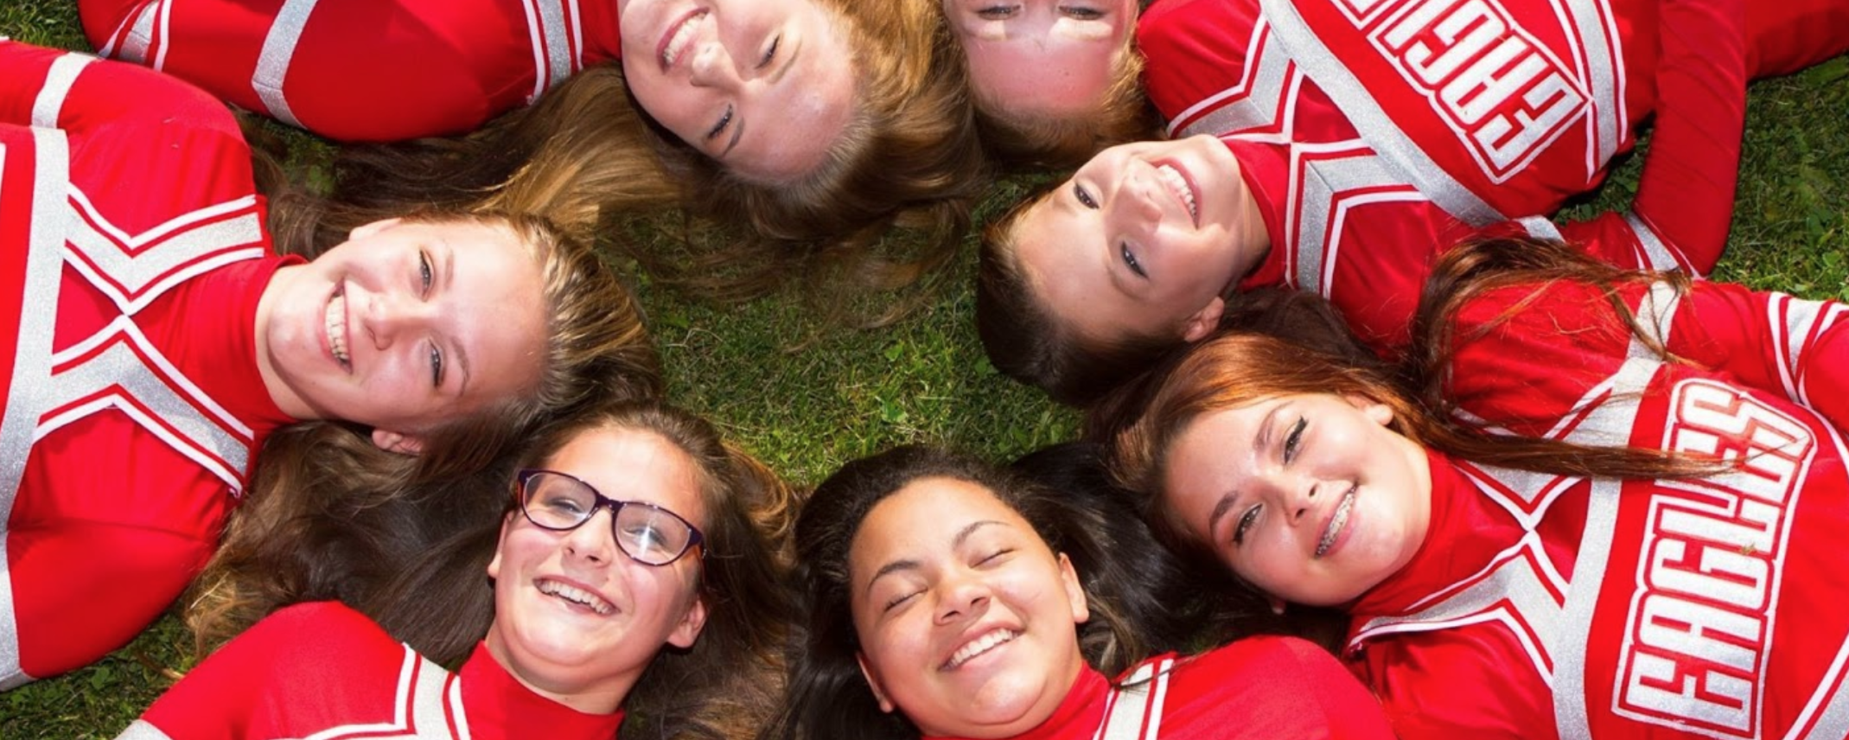 Cheerleaders lying in a circle, heads touching, smiling up at the camera